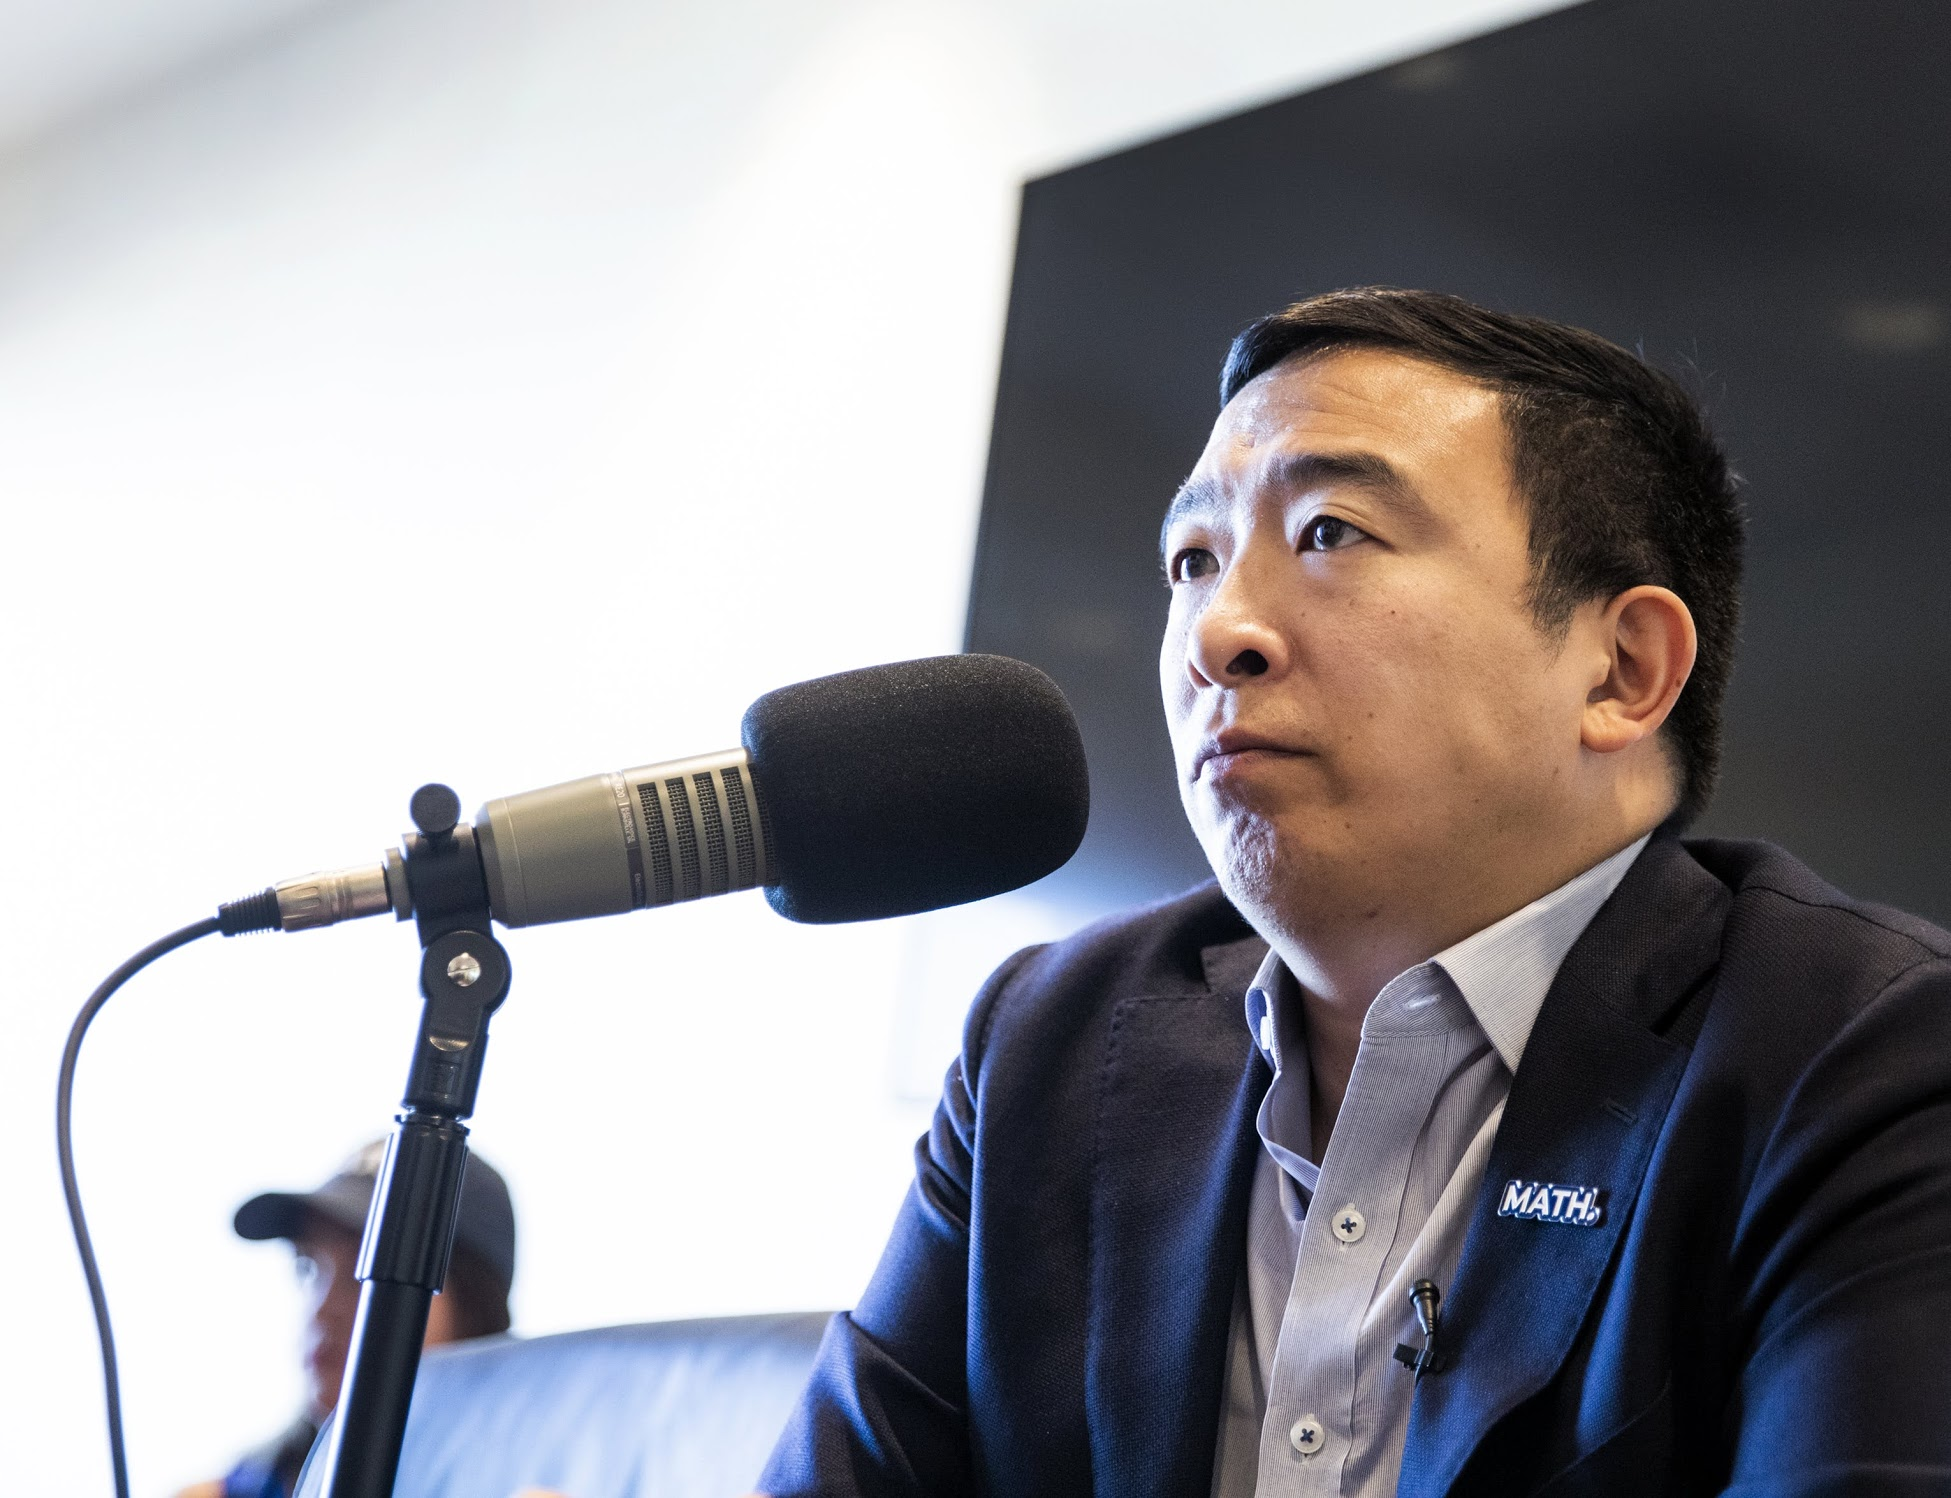 Andrew Yang speaks into a microphone